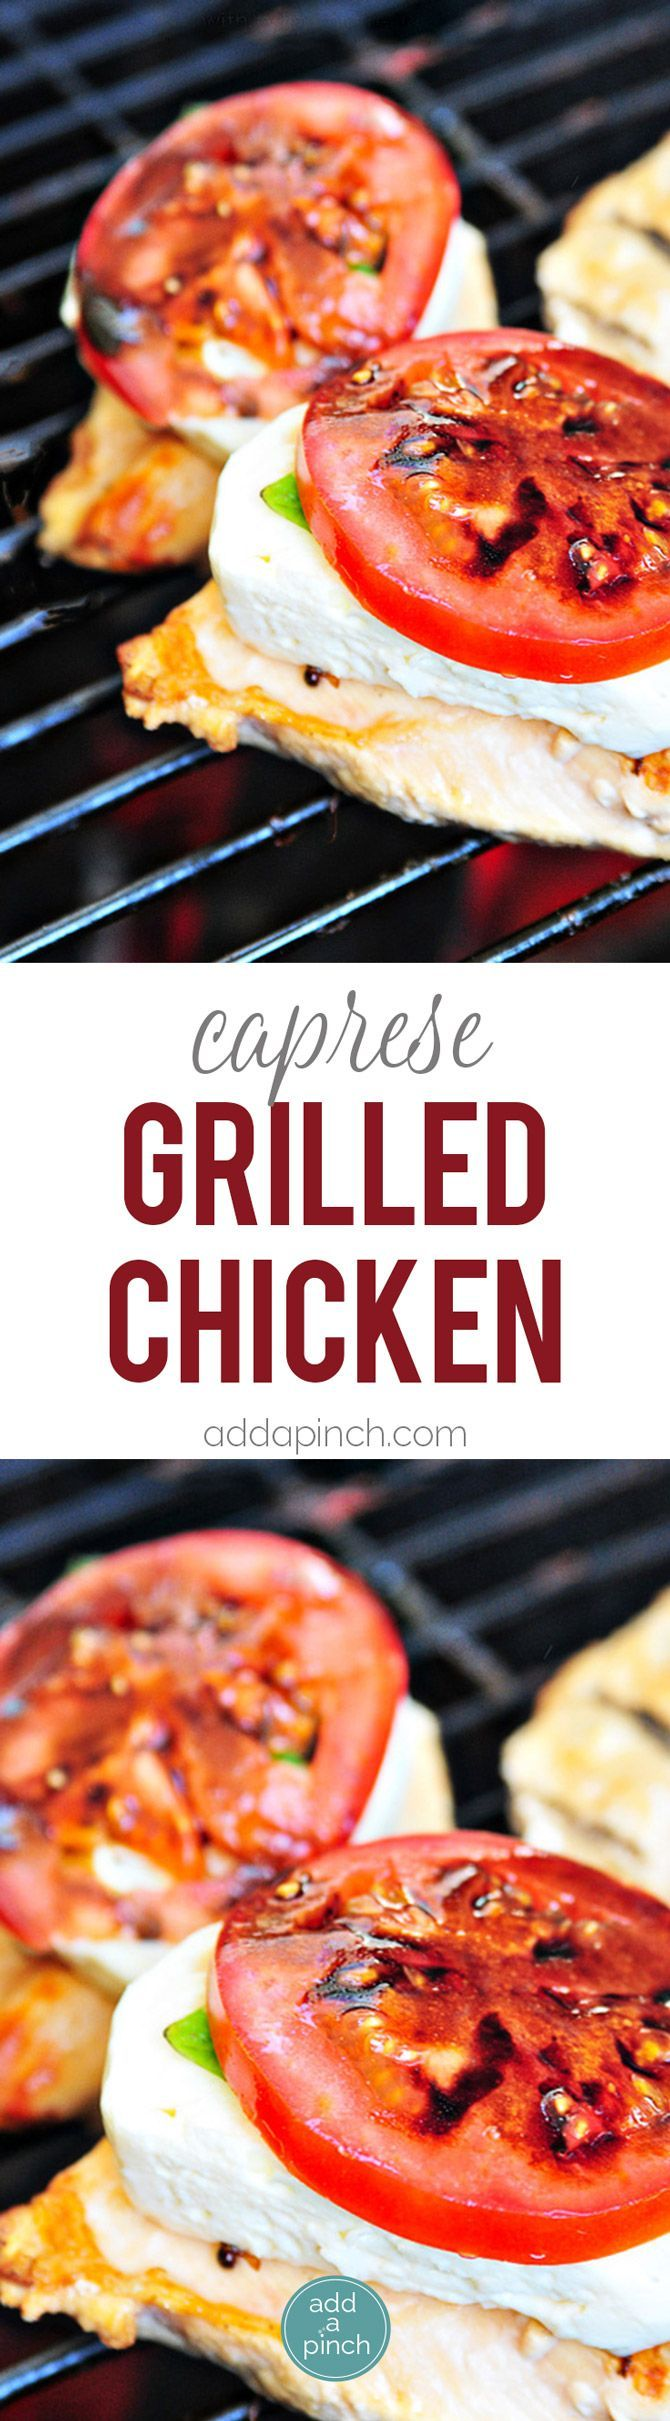 Caprese Grilled Chicken with Balsamic Reduction Recipe - A favorite caprese…